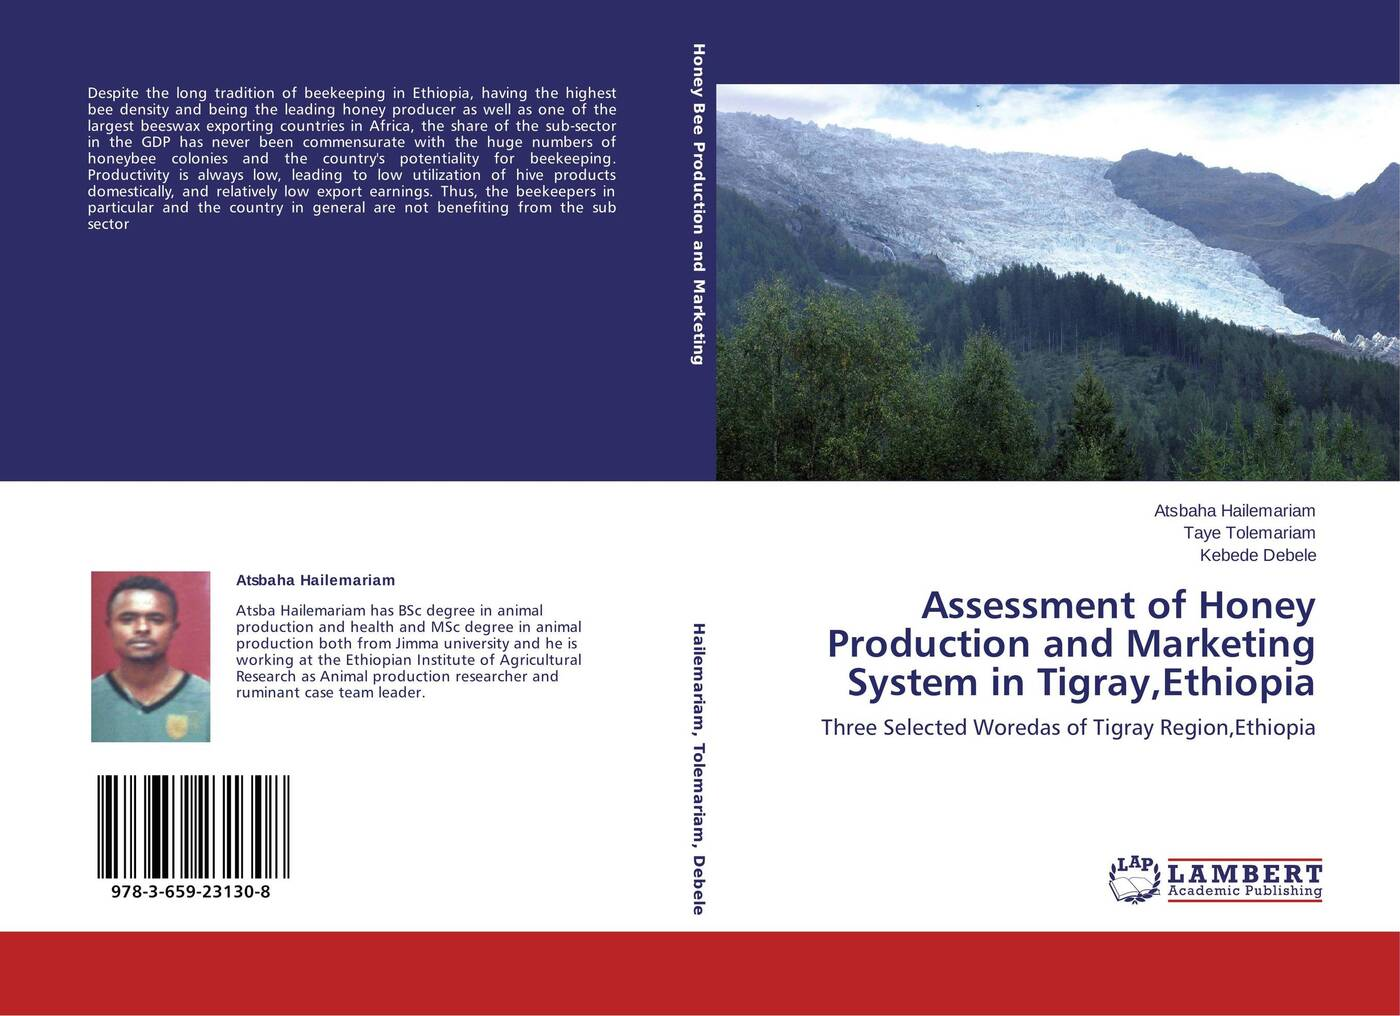 Atsbaha Hailemariam,Taye Tolemariam and Kebede Debele Assessment of Honey Production and Marketing System in Tigray,Ethiopia belay belete anjullo and ayele taye the determinants of domestic price volatility for cereals in ethiopia